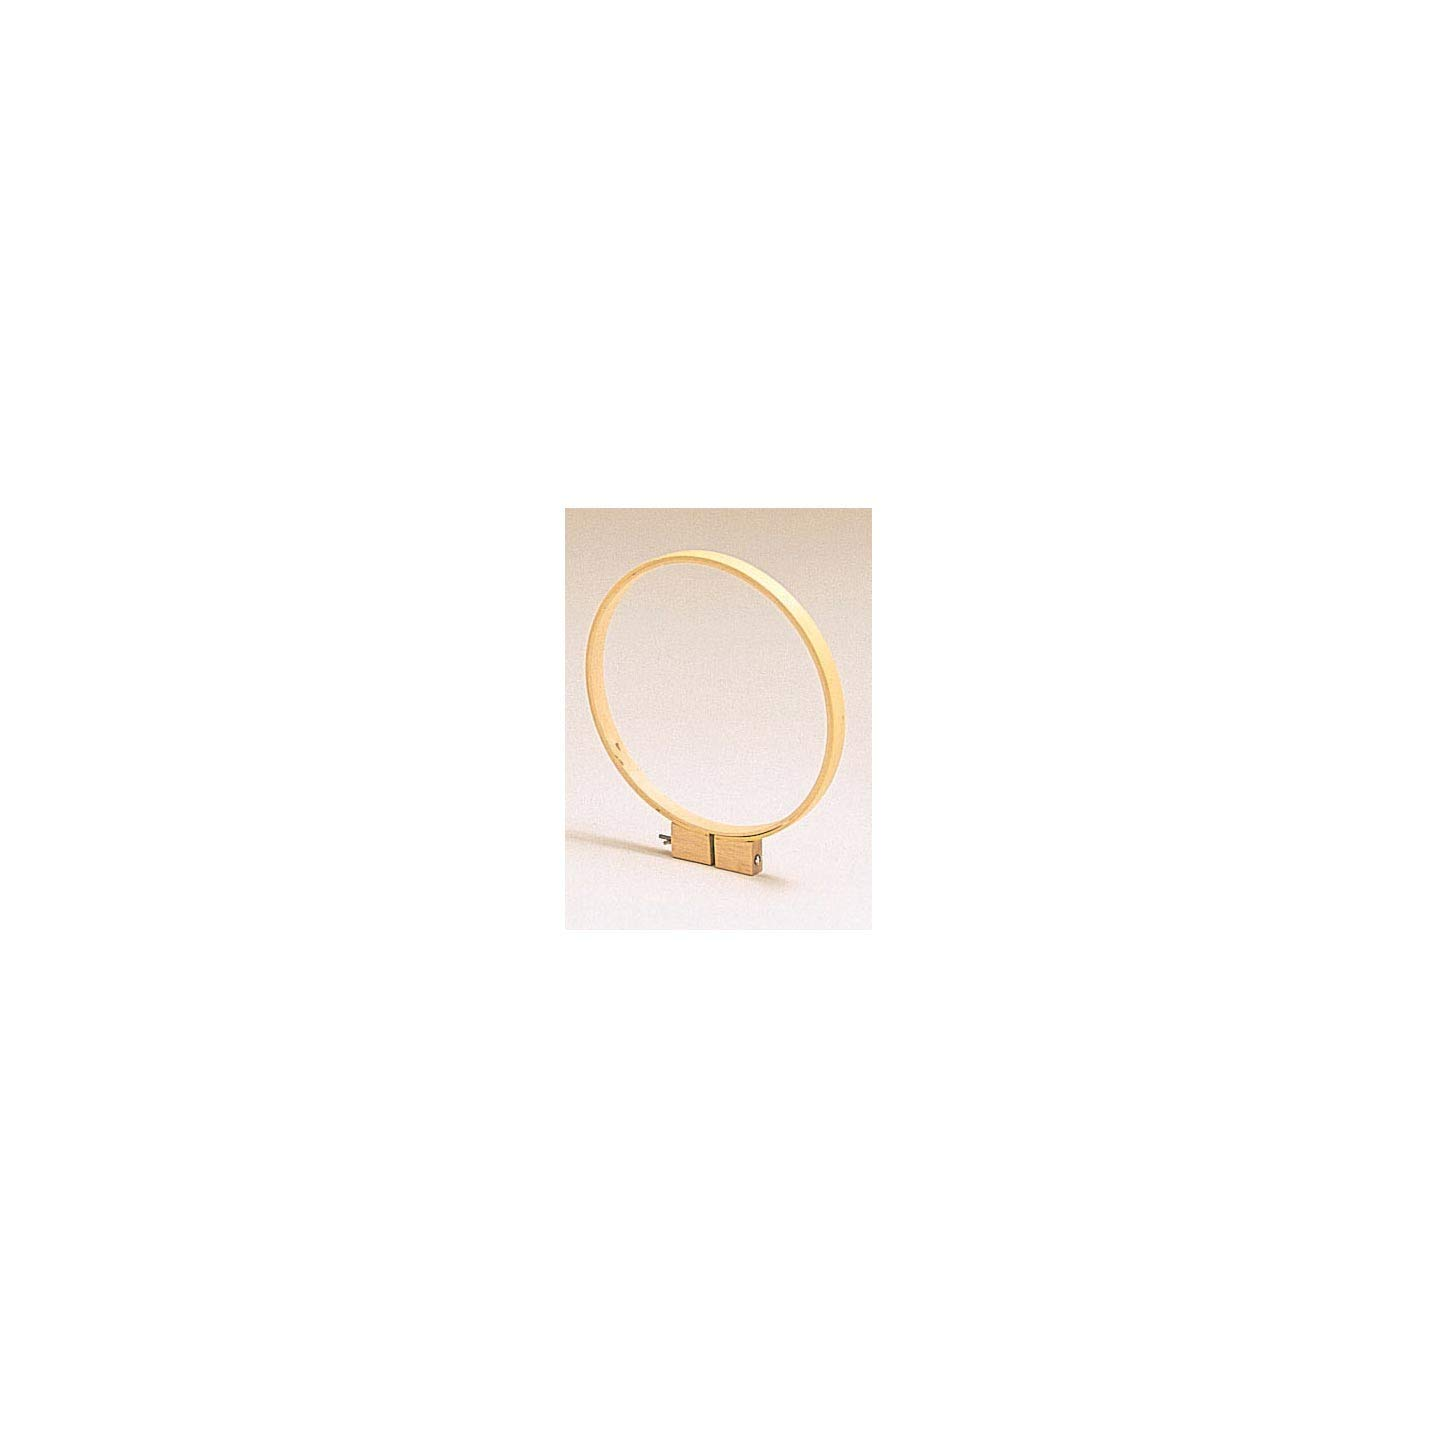 Bulk Buy: Darice DIY Crafts Wood Quilting Hoops Round 18 inches (3-Pack) 3980 Inc.